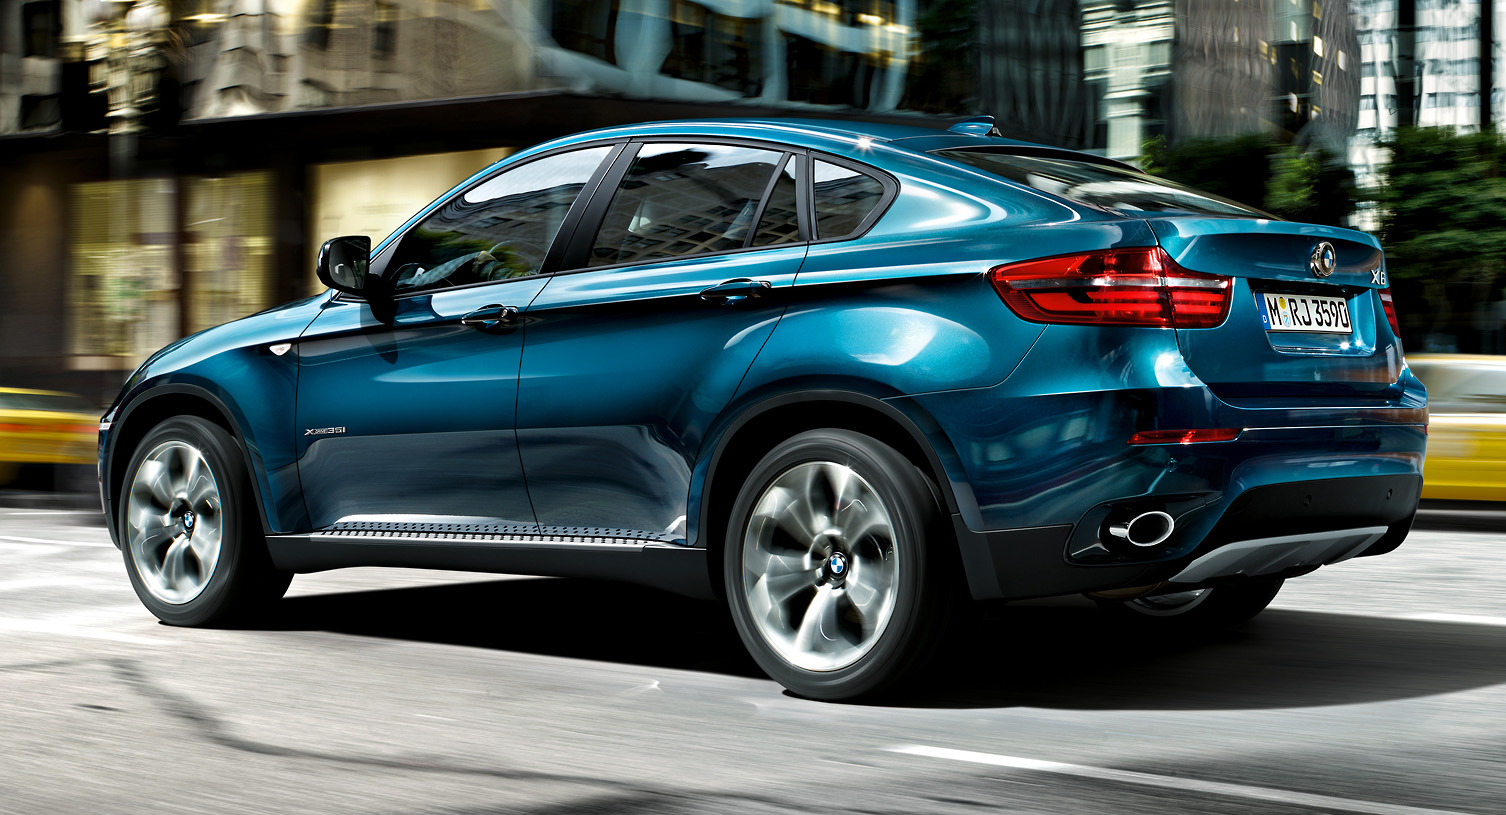 Bmw X6 2 Benzinsider Com A Mercedes Benz Fan Blog